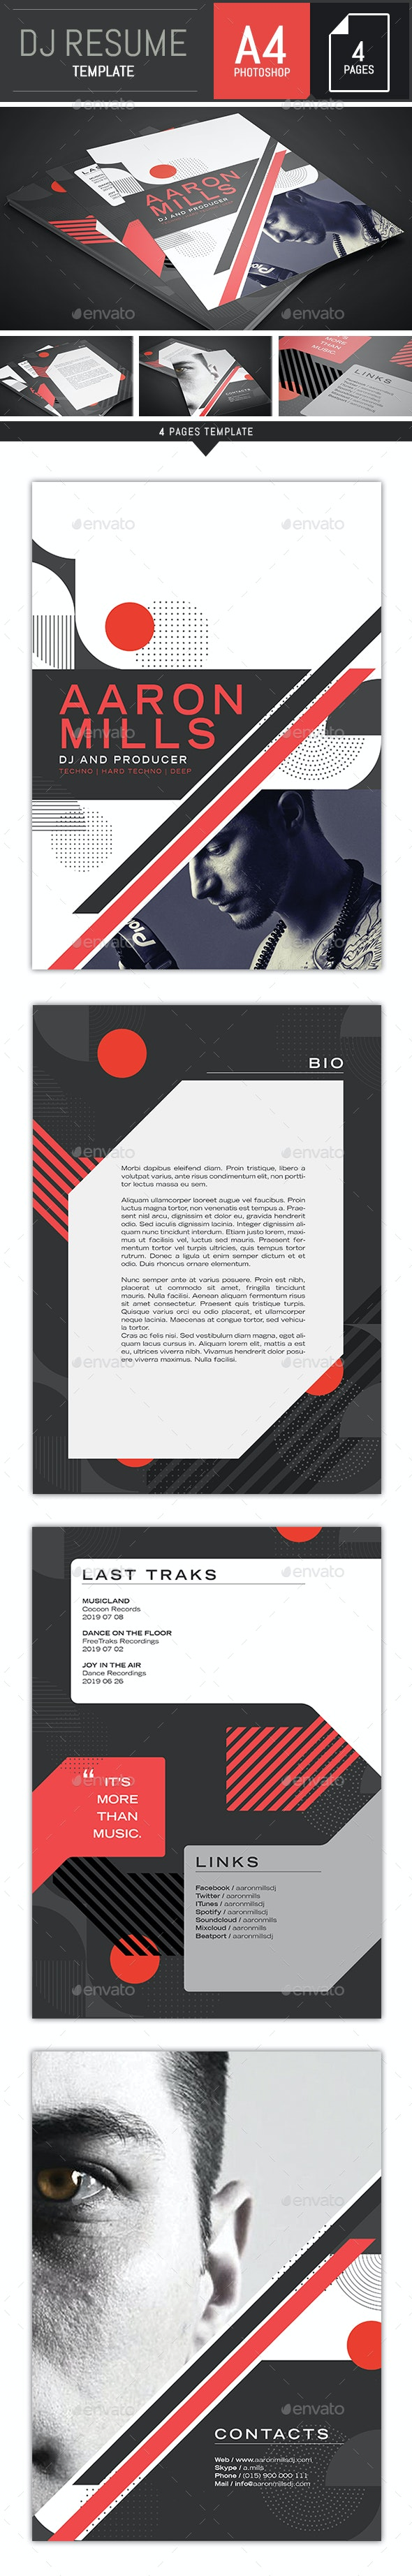 Dj / Musician Japan Style Press Kit / Resume A4 Template - Resumes Stationery